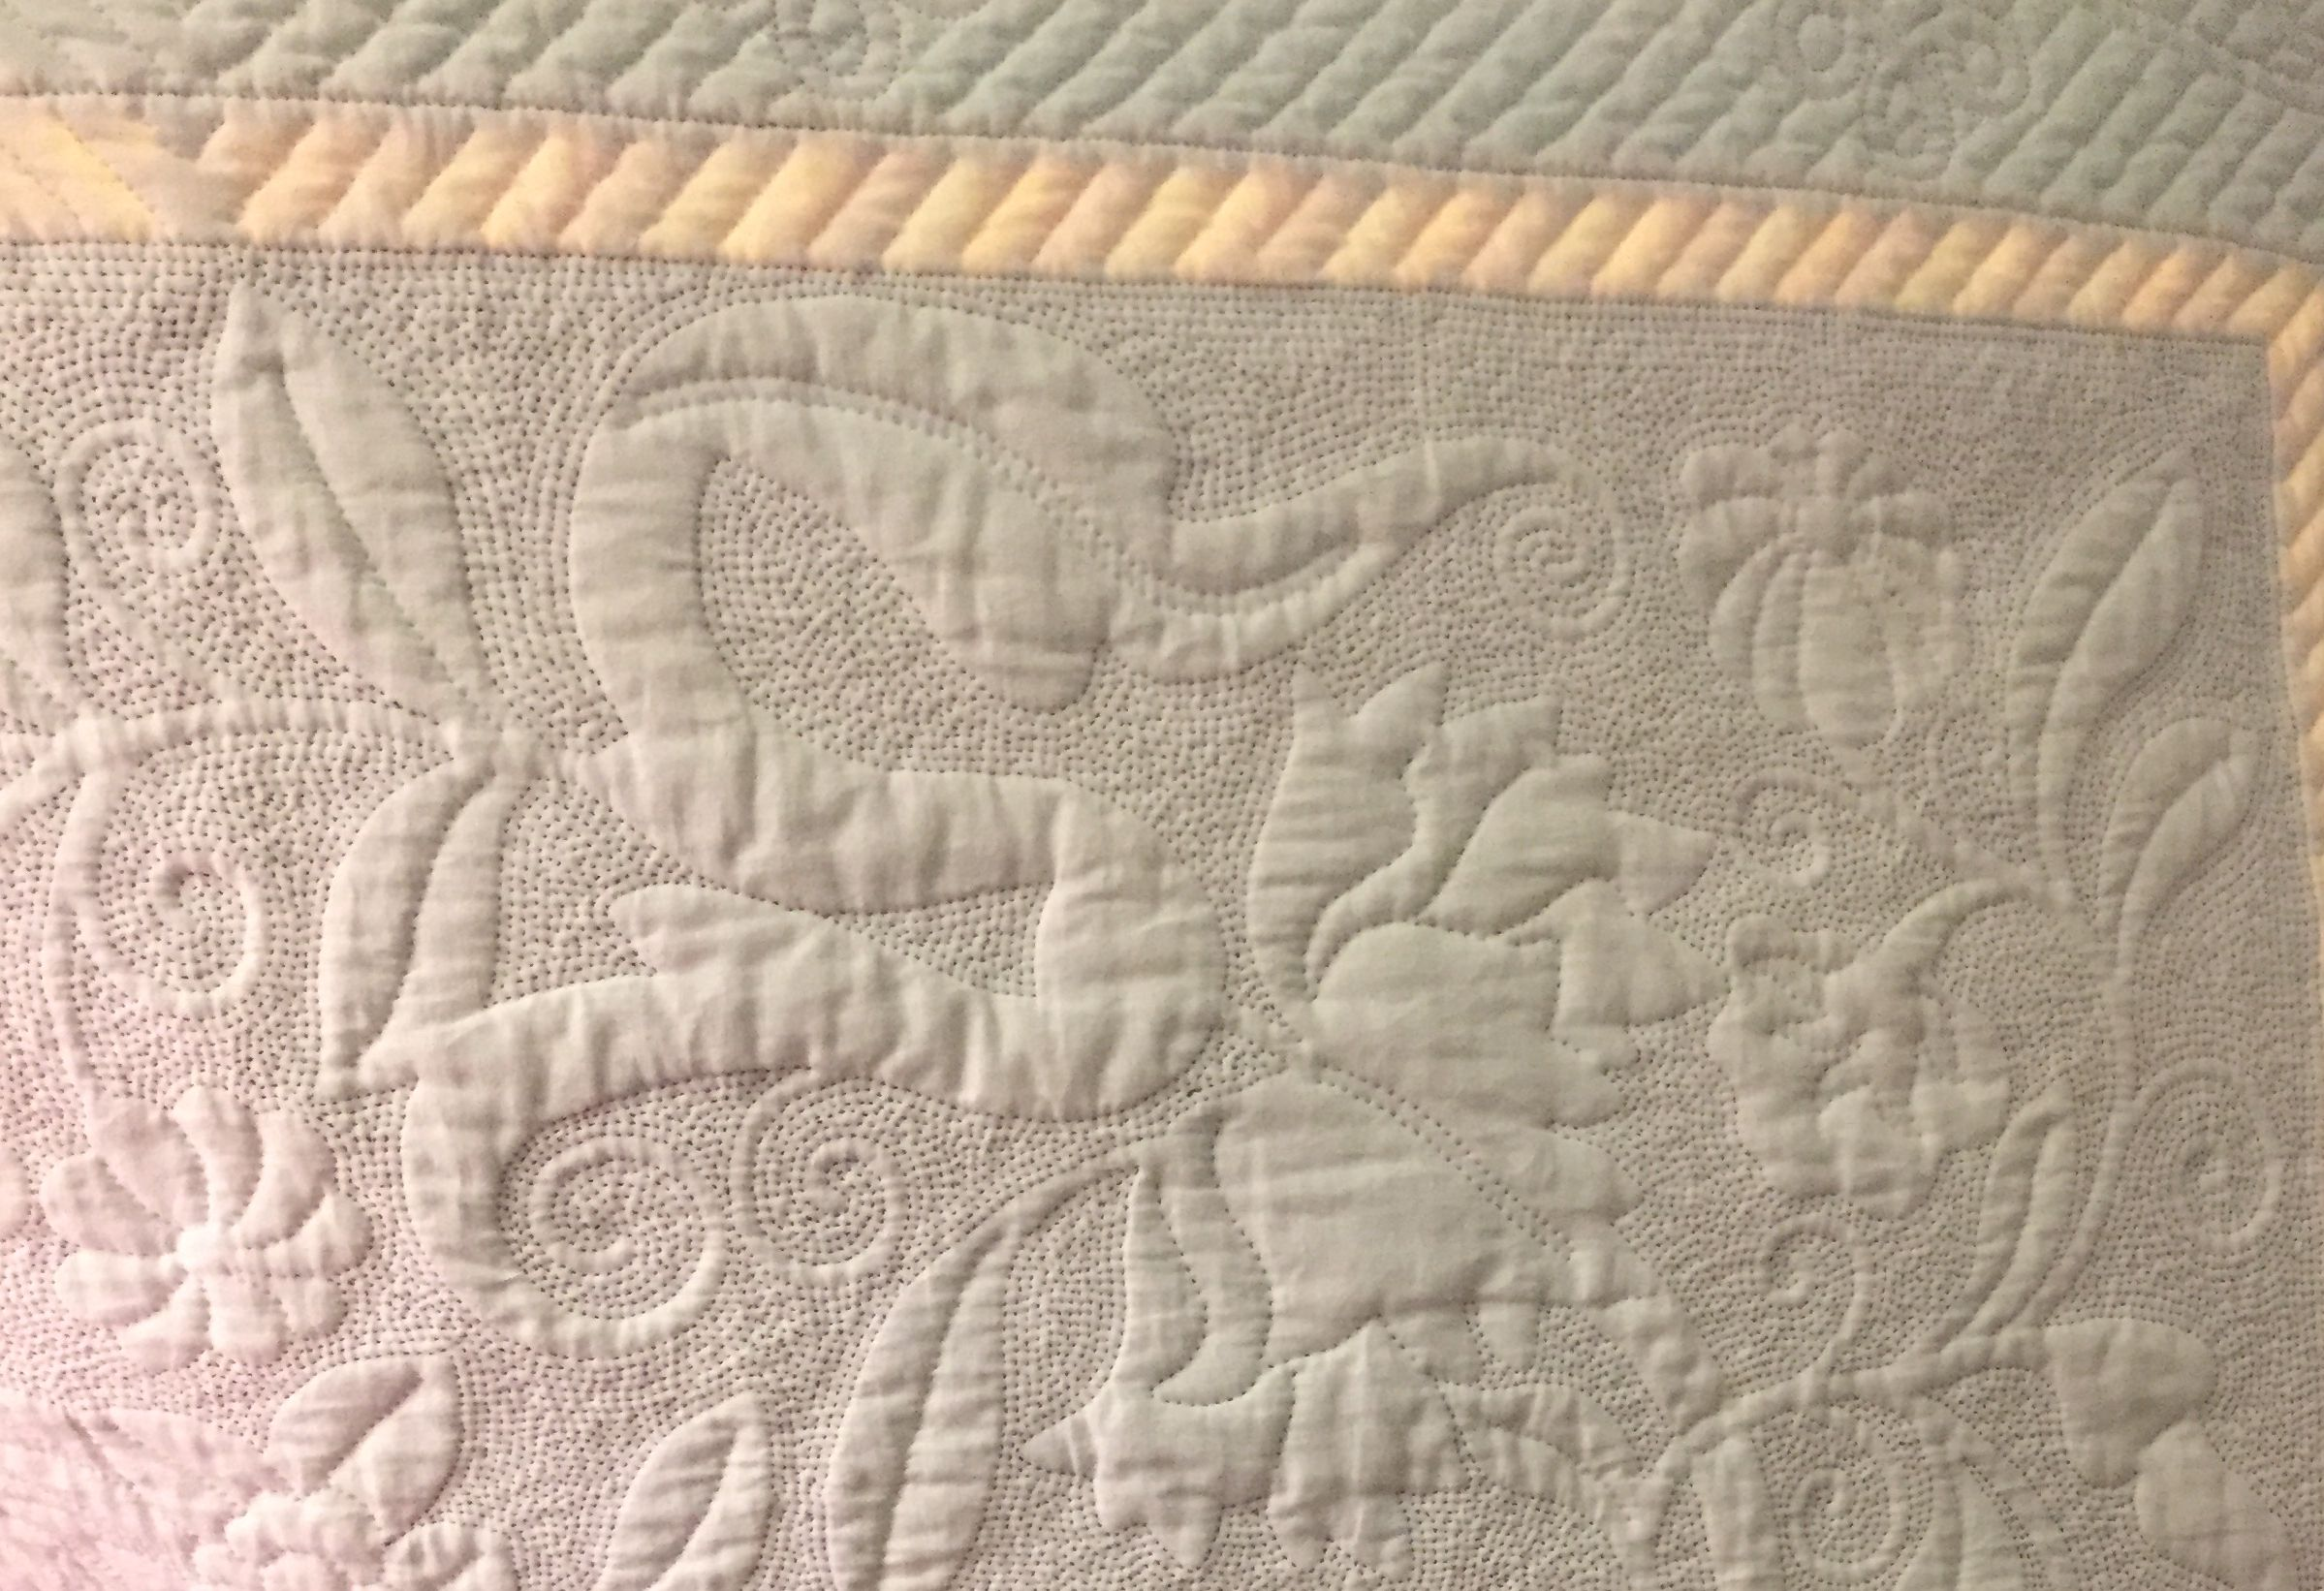 Image of the back of a quilt